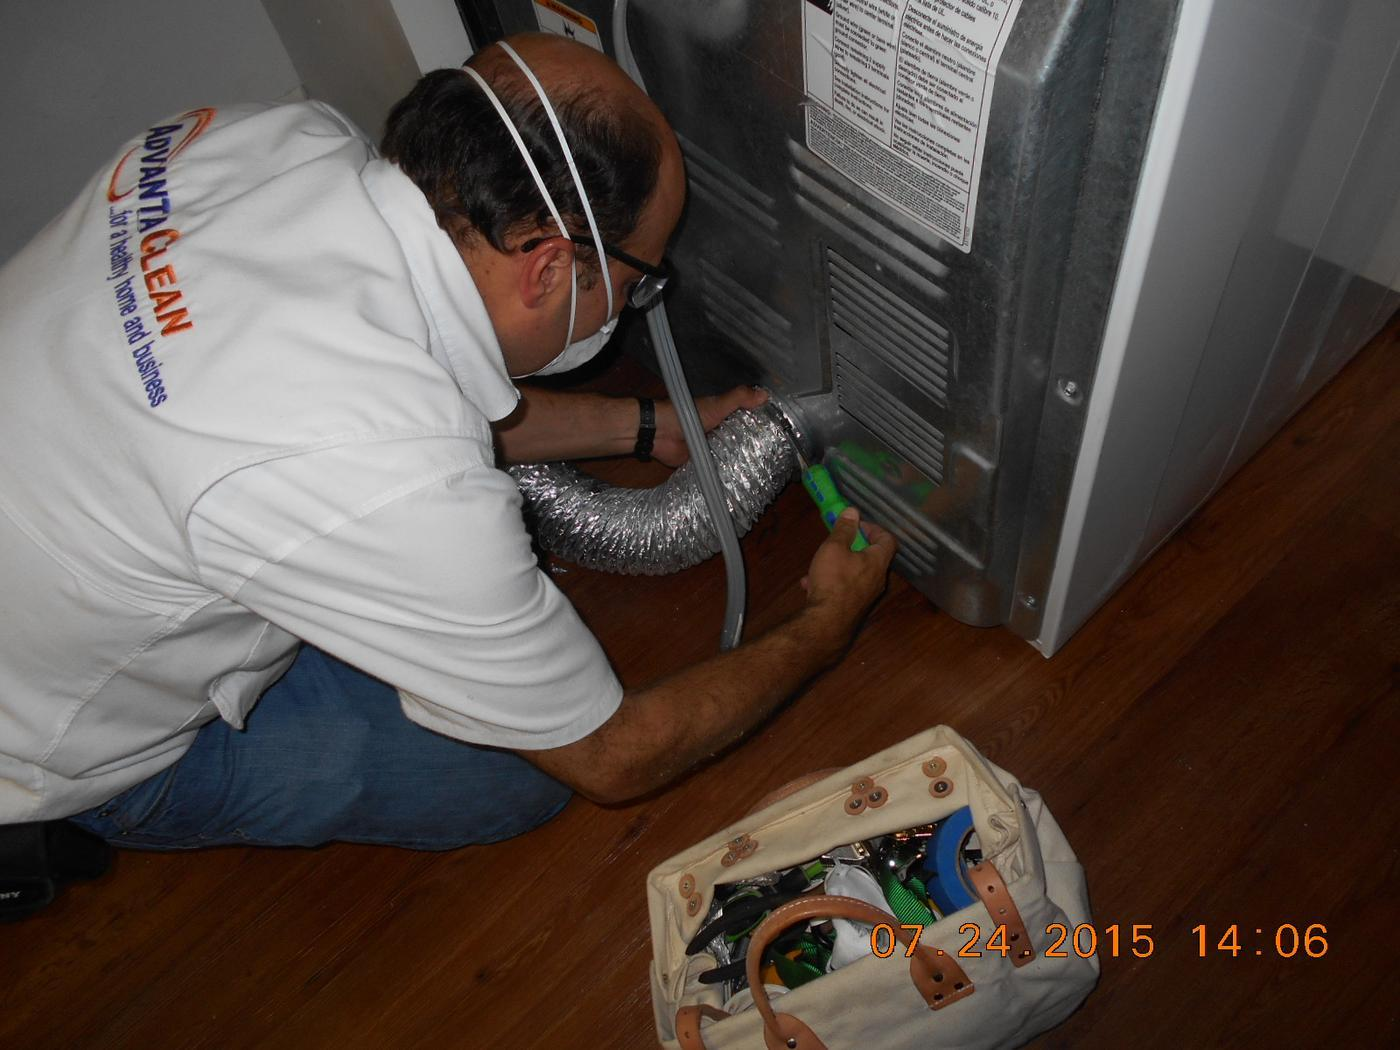 owner, Juan, does a dryer vent cleaning for a whole apartment complex in Miramar, FL